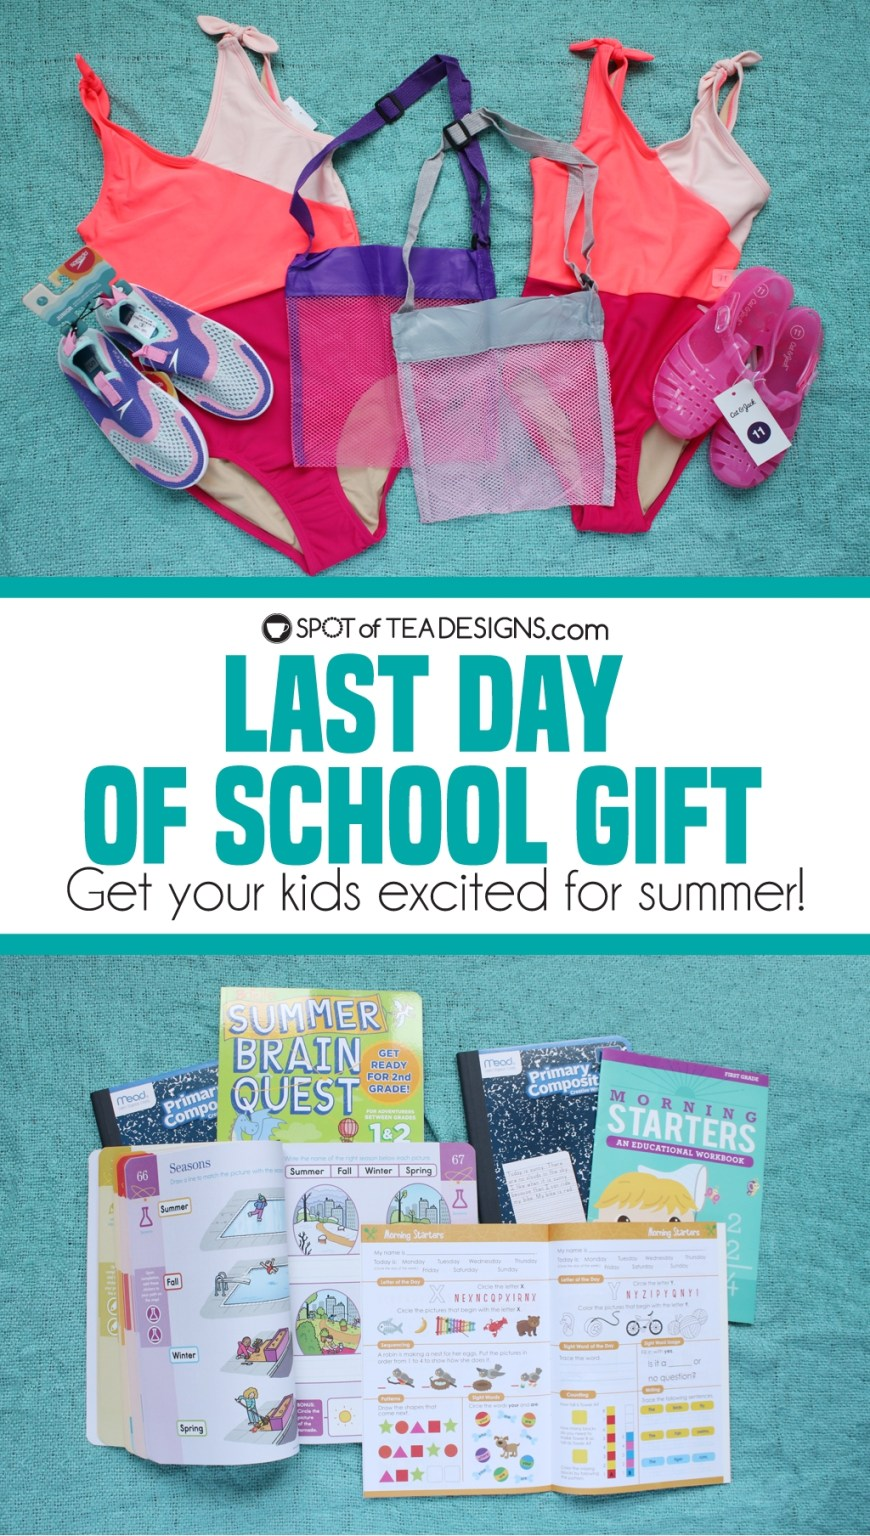 Last day of school gift - get your kids excited for summer! | spotofteadesigns.com